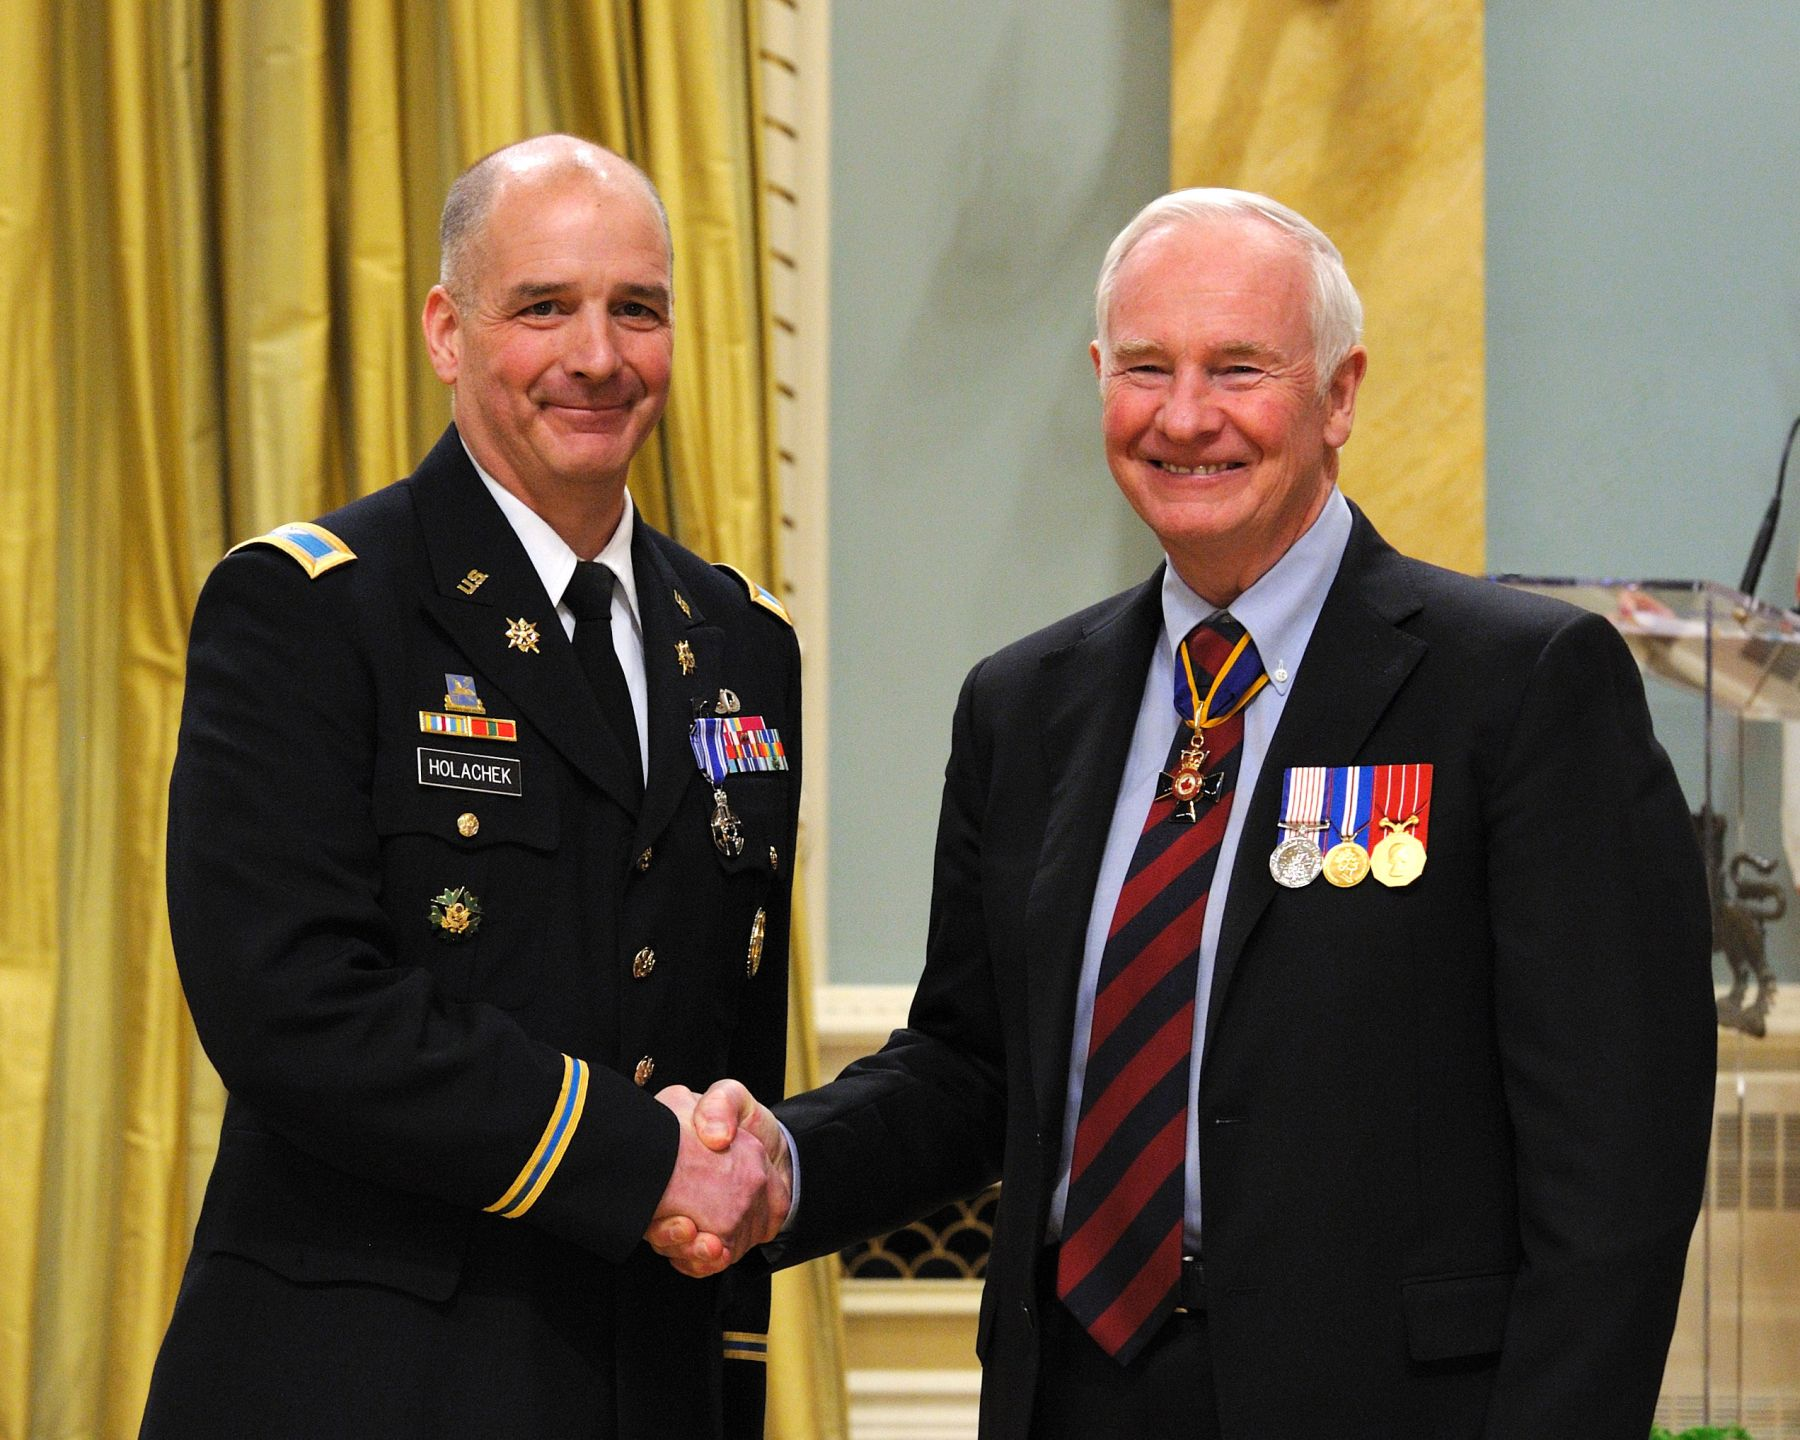 Colonel Jeffrey Holachek, M.S.M. (United States Army), received the Meritorious Service Medal (Military Division) from His Excellency. Colonel Holachek, of the United States Army, consistently demonstrated strong leadership and outstanding professionalism. He developed and employed innovative concepts, effectively led his staff through complex operational planning, and delivered effective plans for implementation. Colonel Holachek's dedication and unwavering commitment greatly enhanced the operational effectiveness of expeditionary operations and brought great credit to Canada.